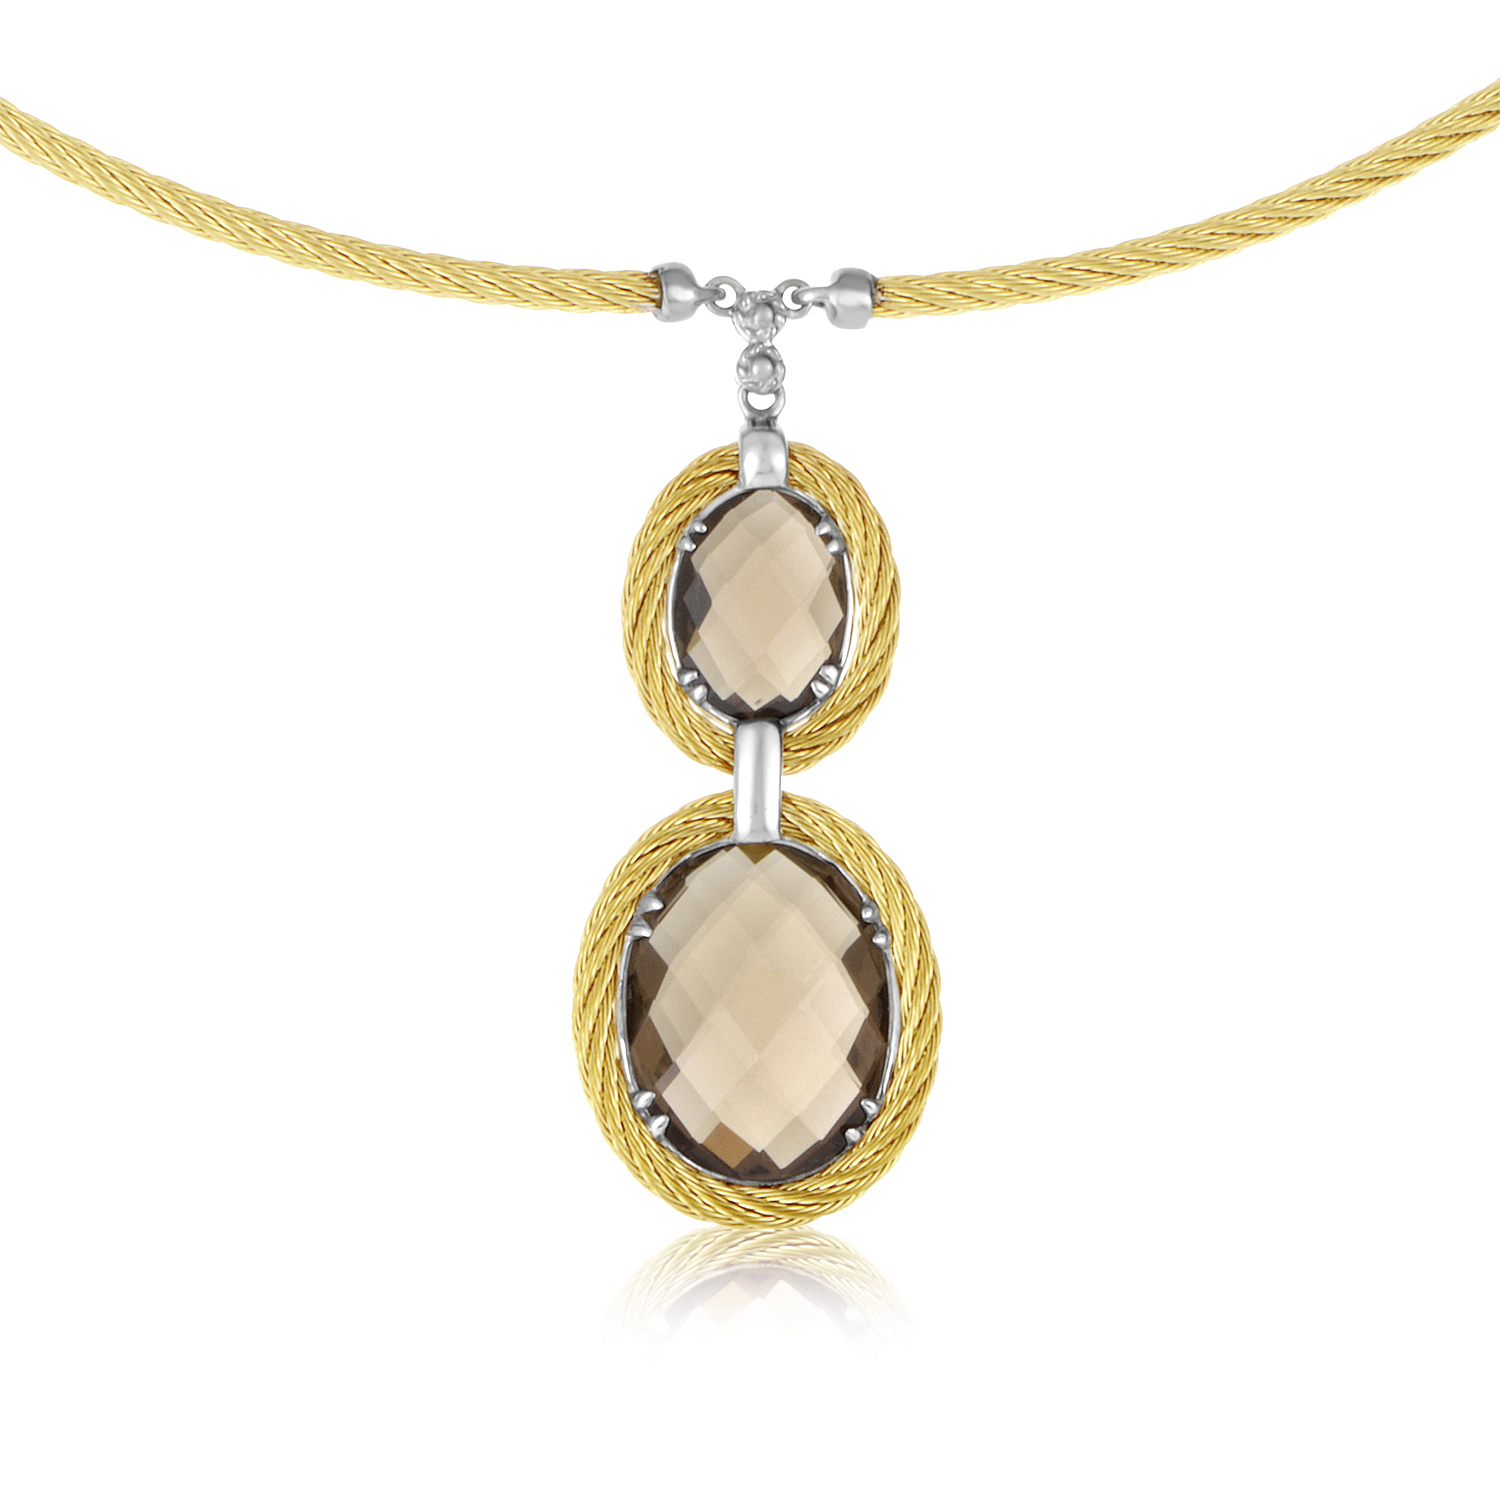 Yellow PVD Coated Stainless Steel Celtic Cable Necklace with 18K White Gold Accents and Two Hanging Oval Shaped Smoky Quartz Stones